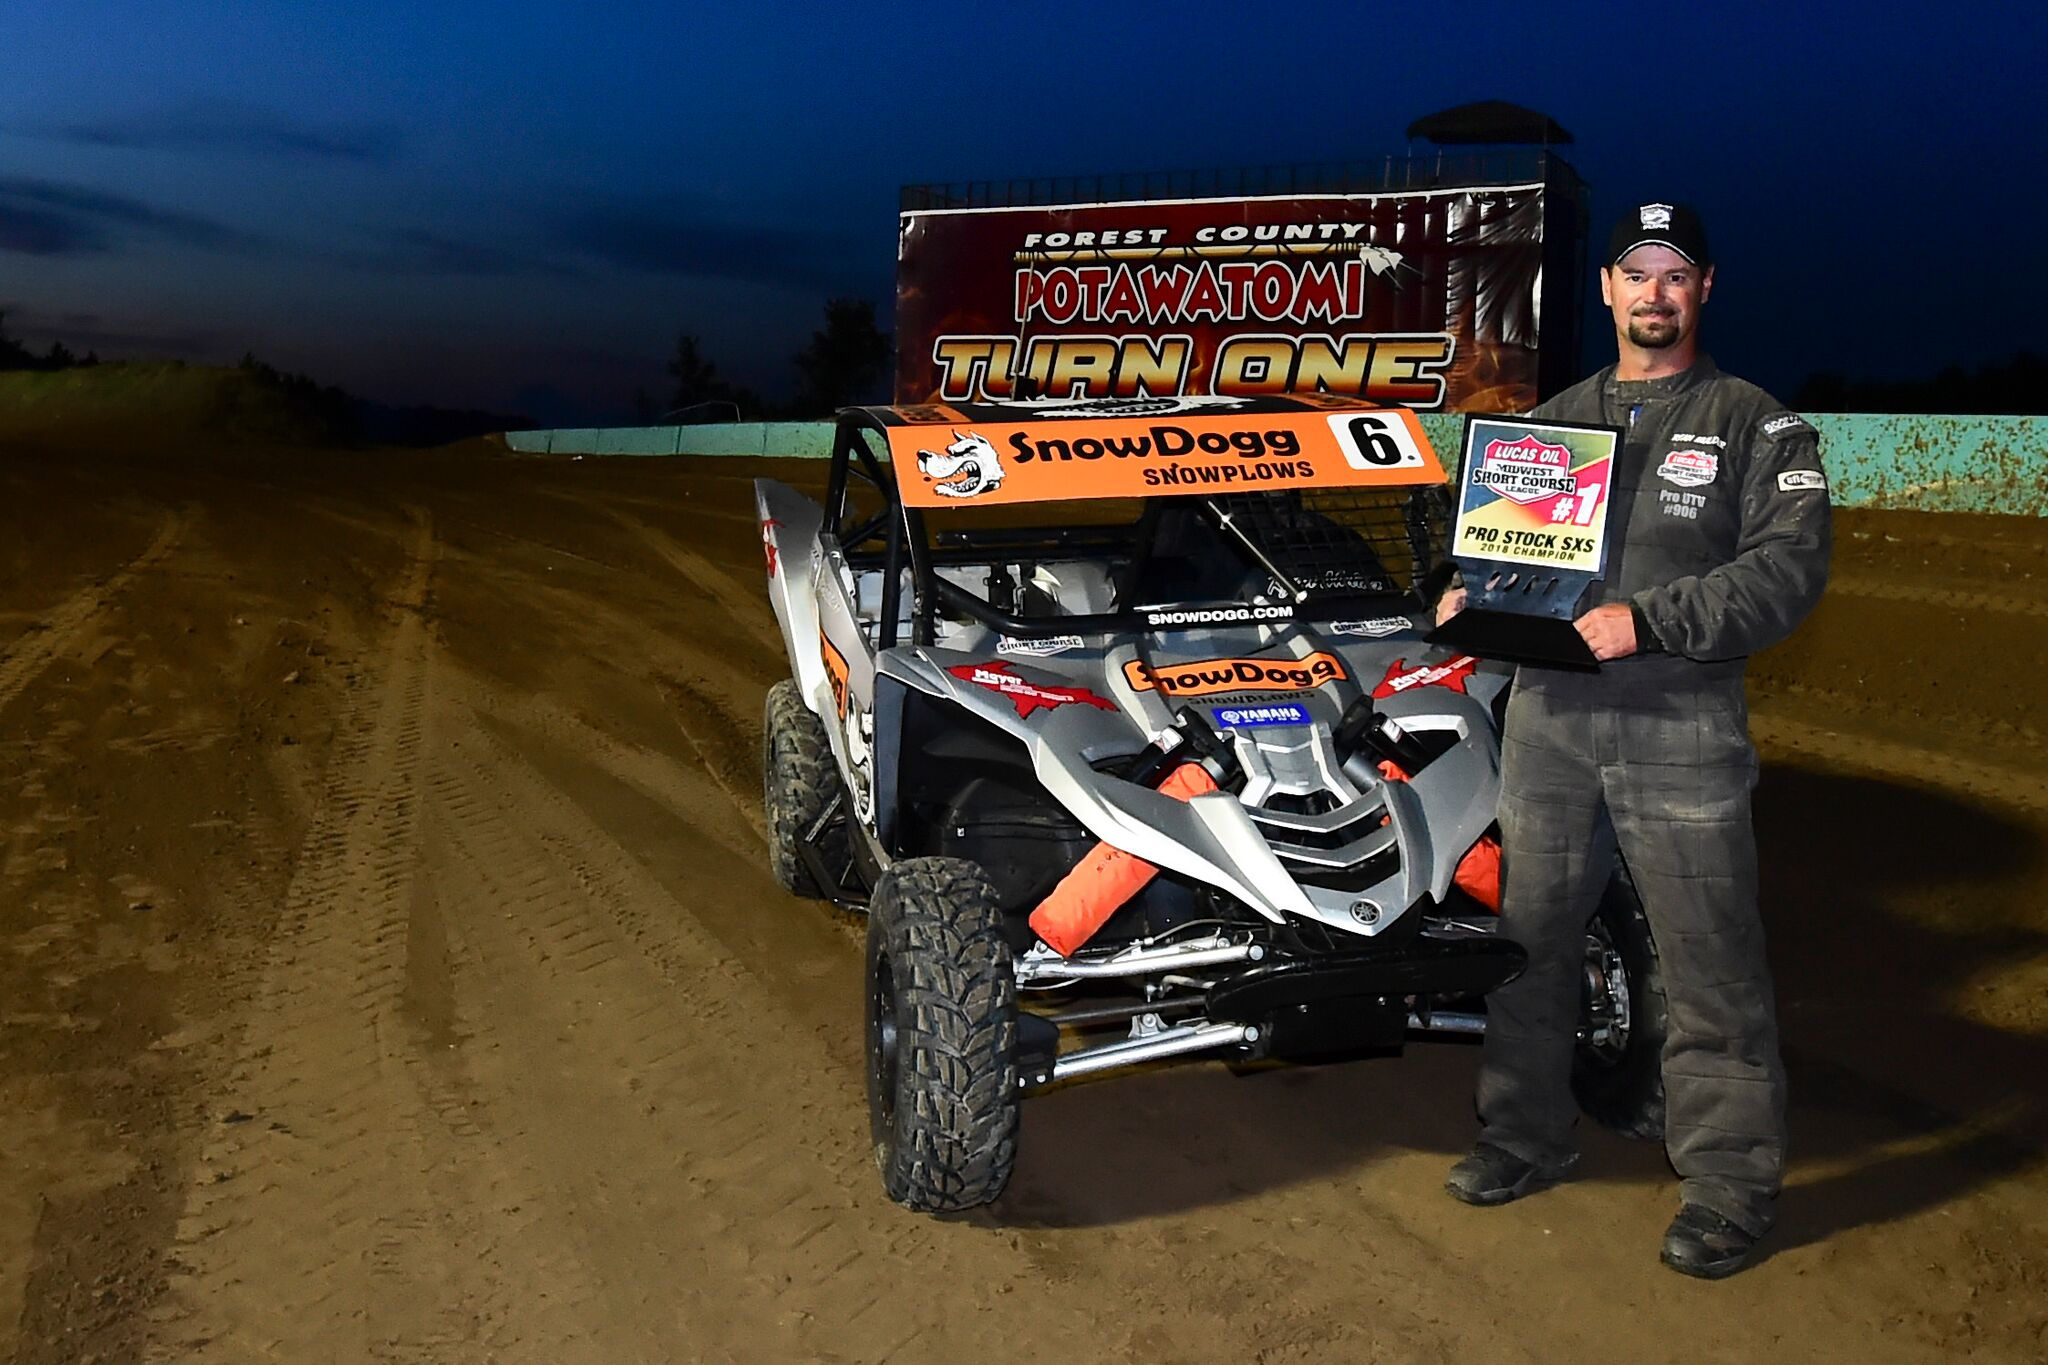 Yamaha - Lucas Oil Midwest Short Course League Pro Stock SxS Champion - Ryan Mulder